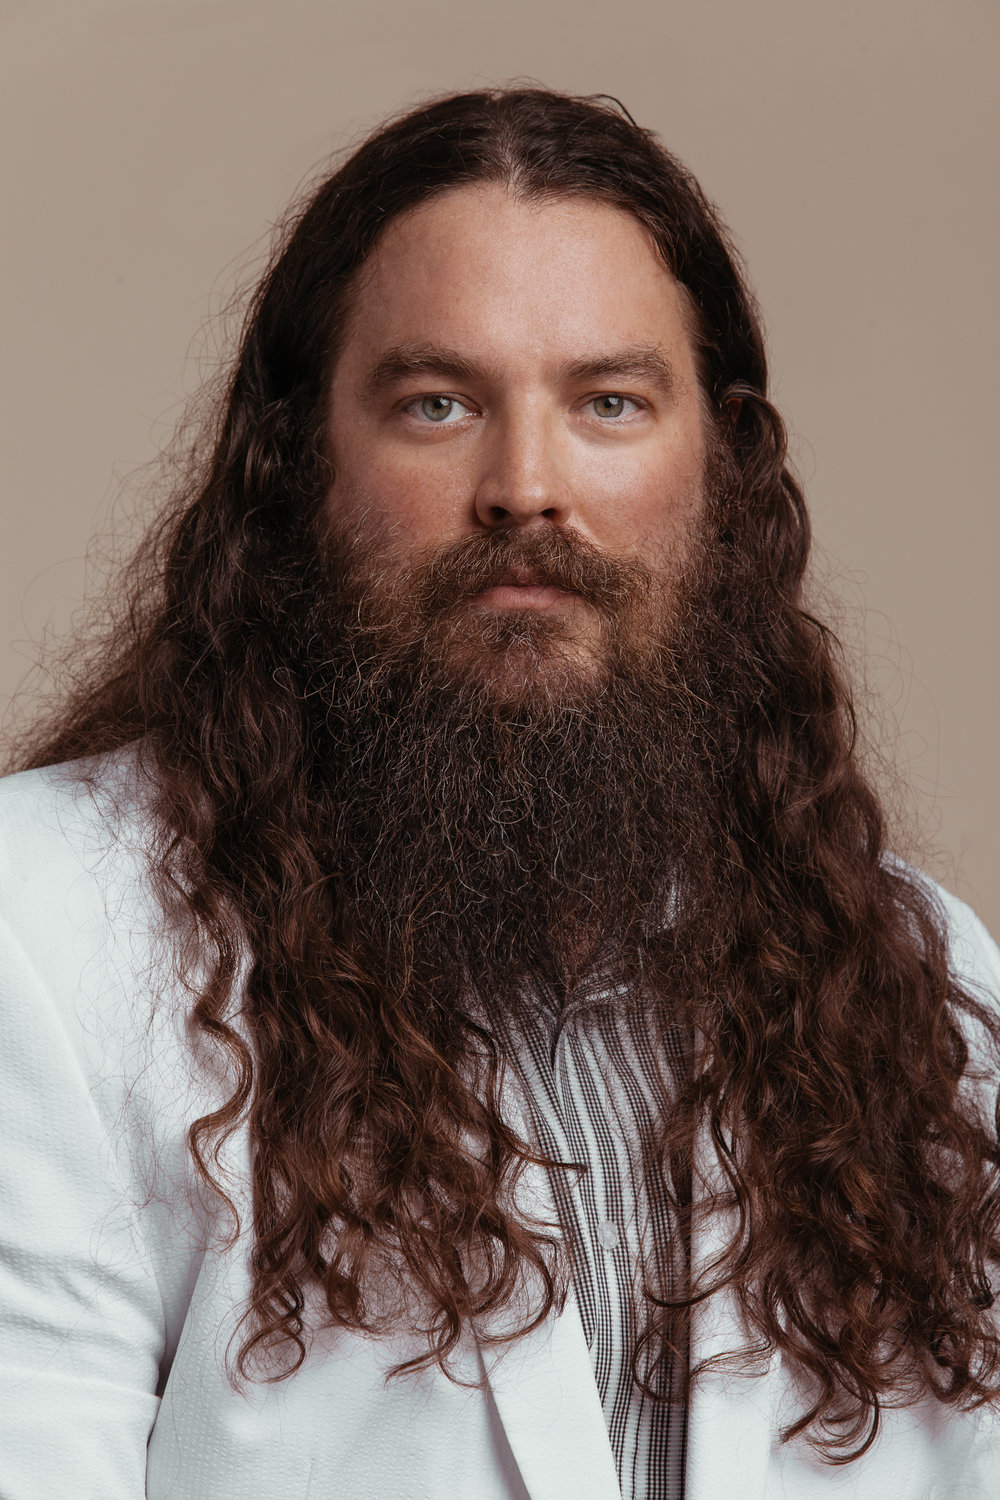 Jocephus for Native Magazine